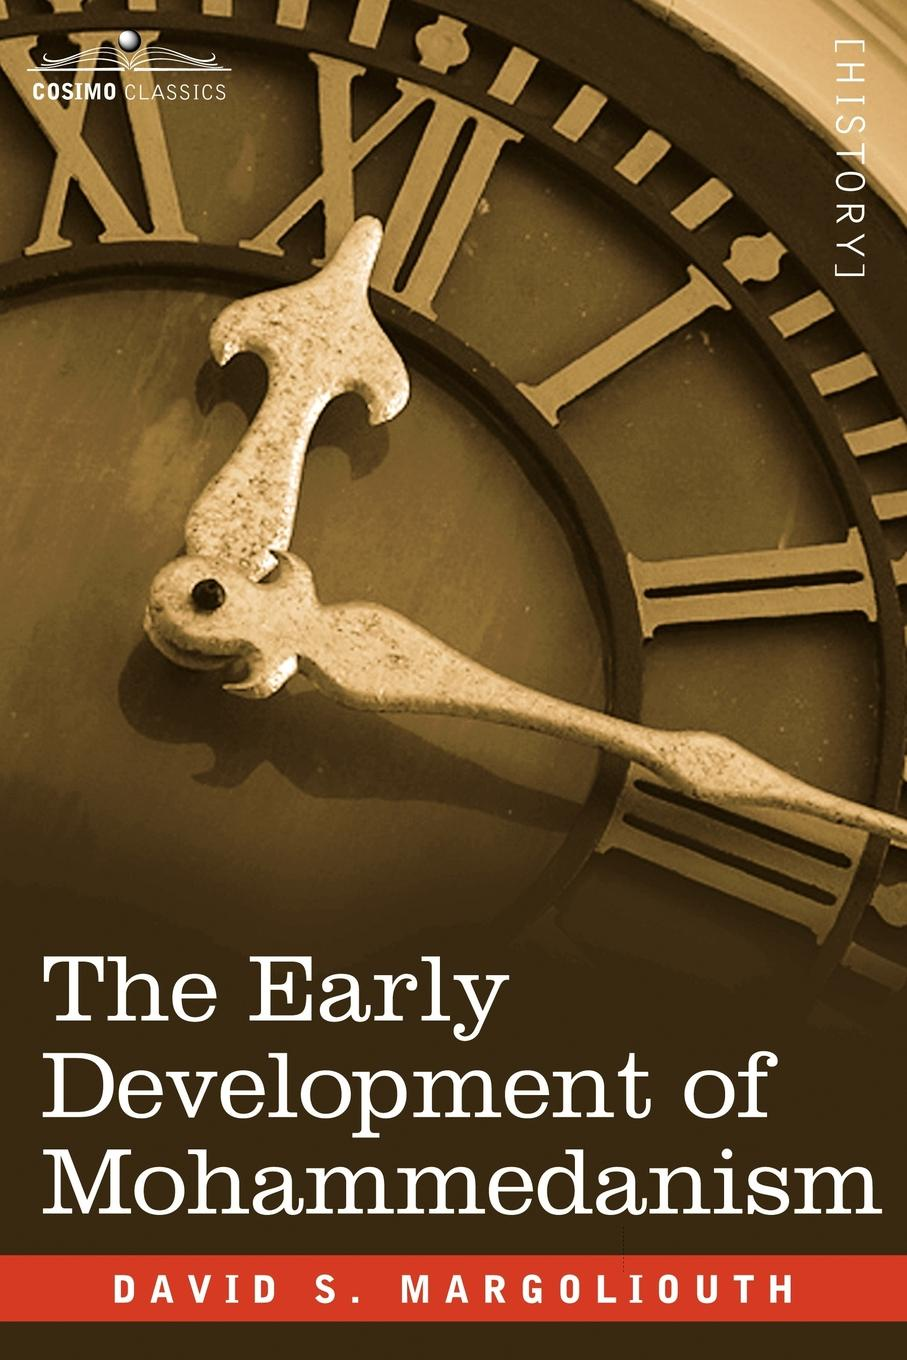 David S. Margoliouth The Early Development of Mohammedanism dmitri makarov islam and development at micro level community activities of the islamic movement in israel